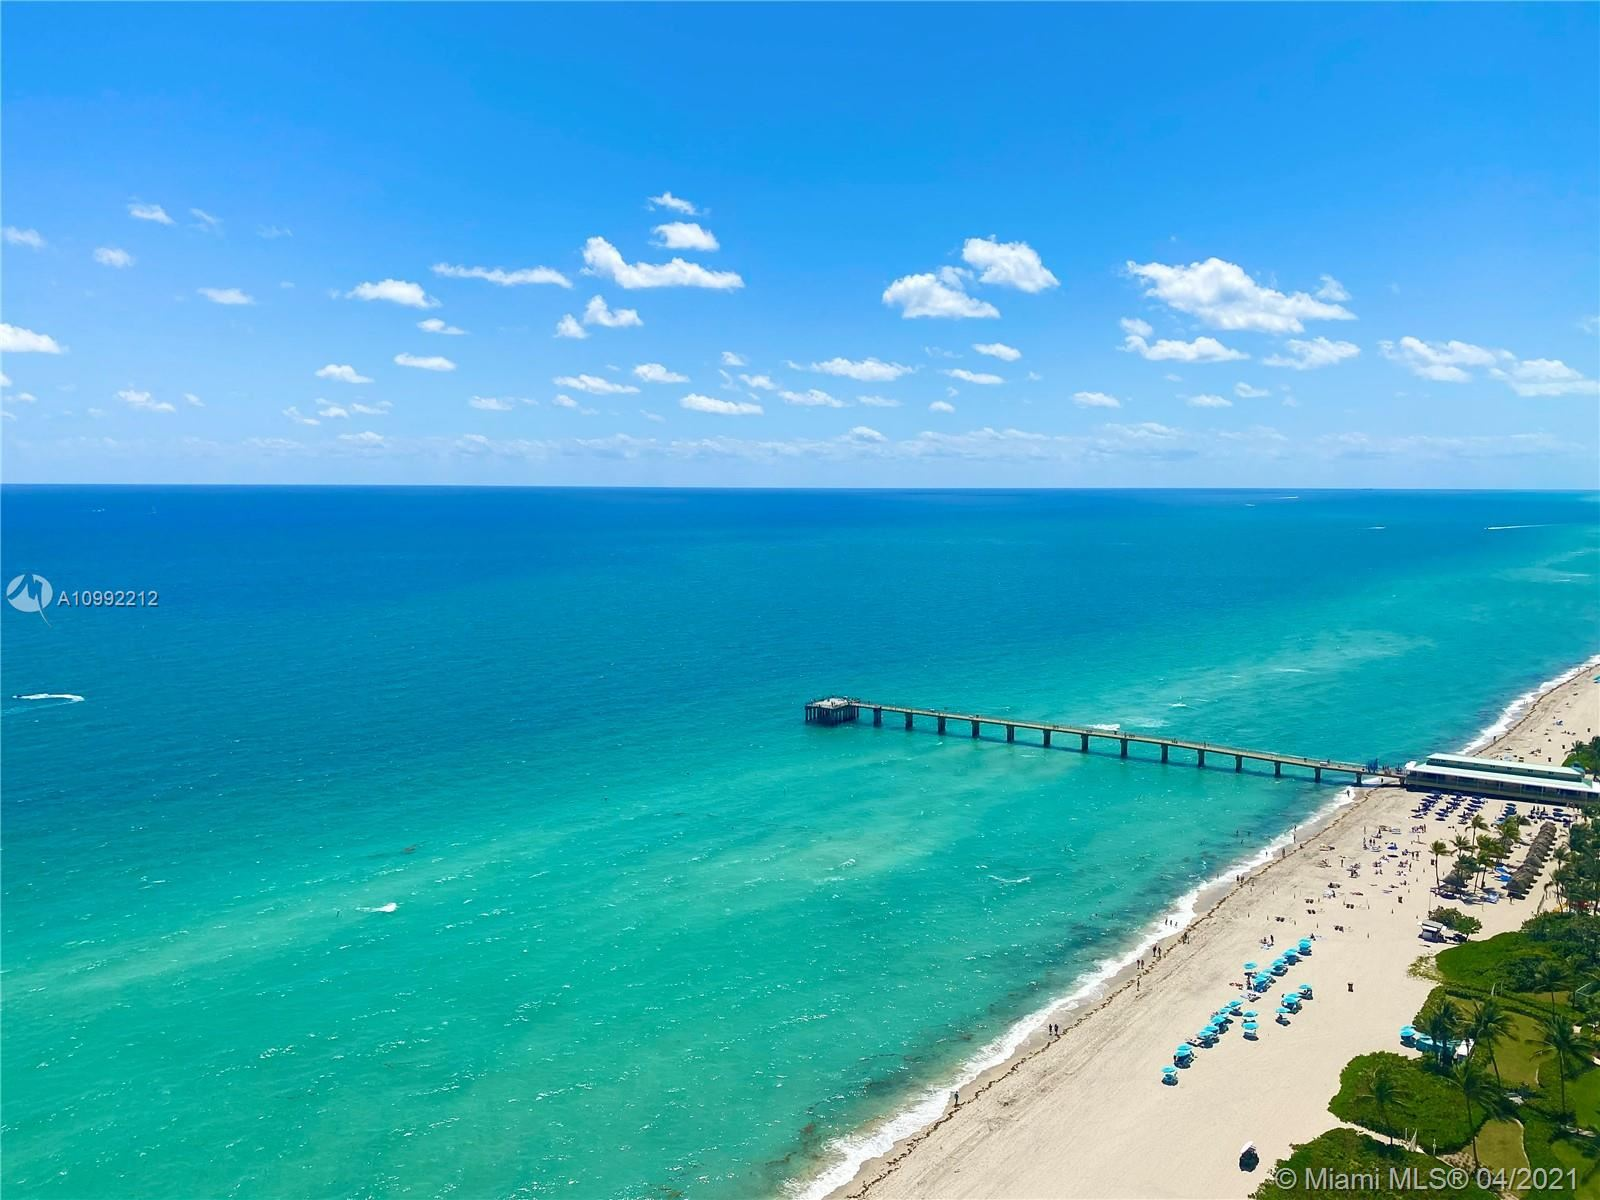 17001 collins ave #2902, Sunny Isles, FL 33160 - #: A10992212